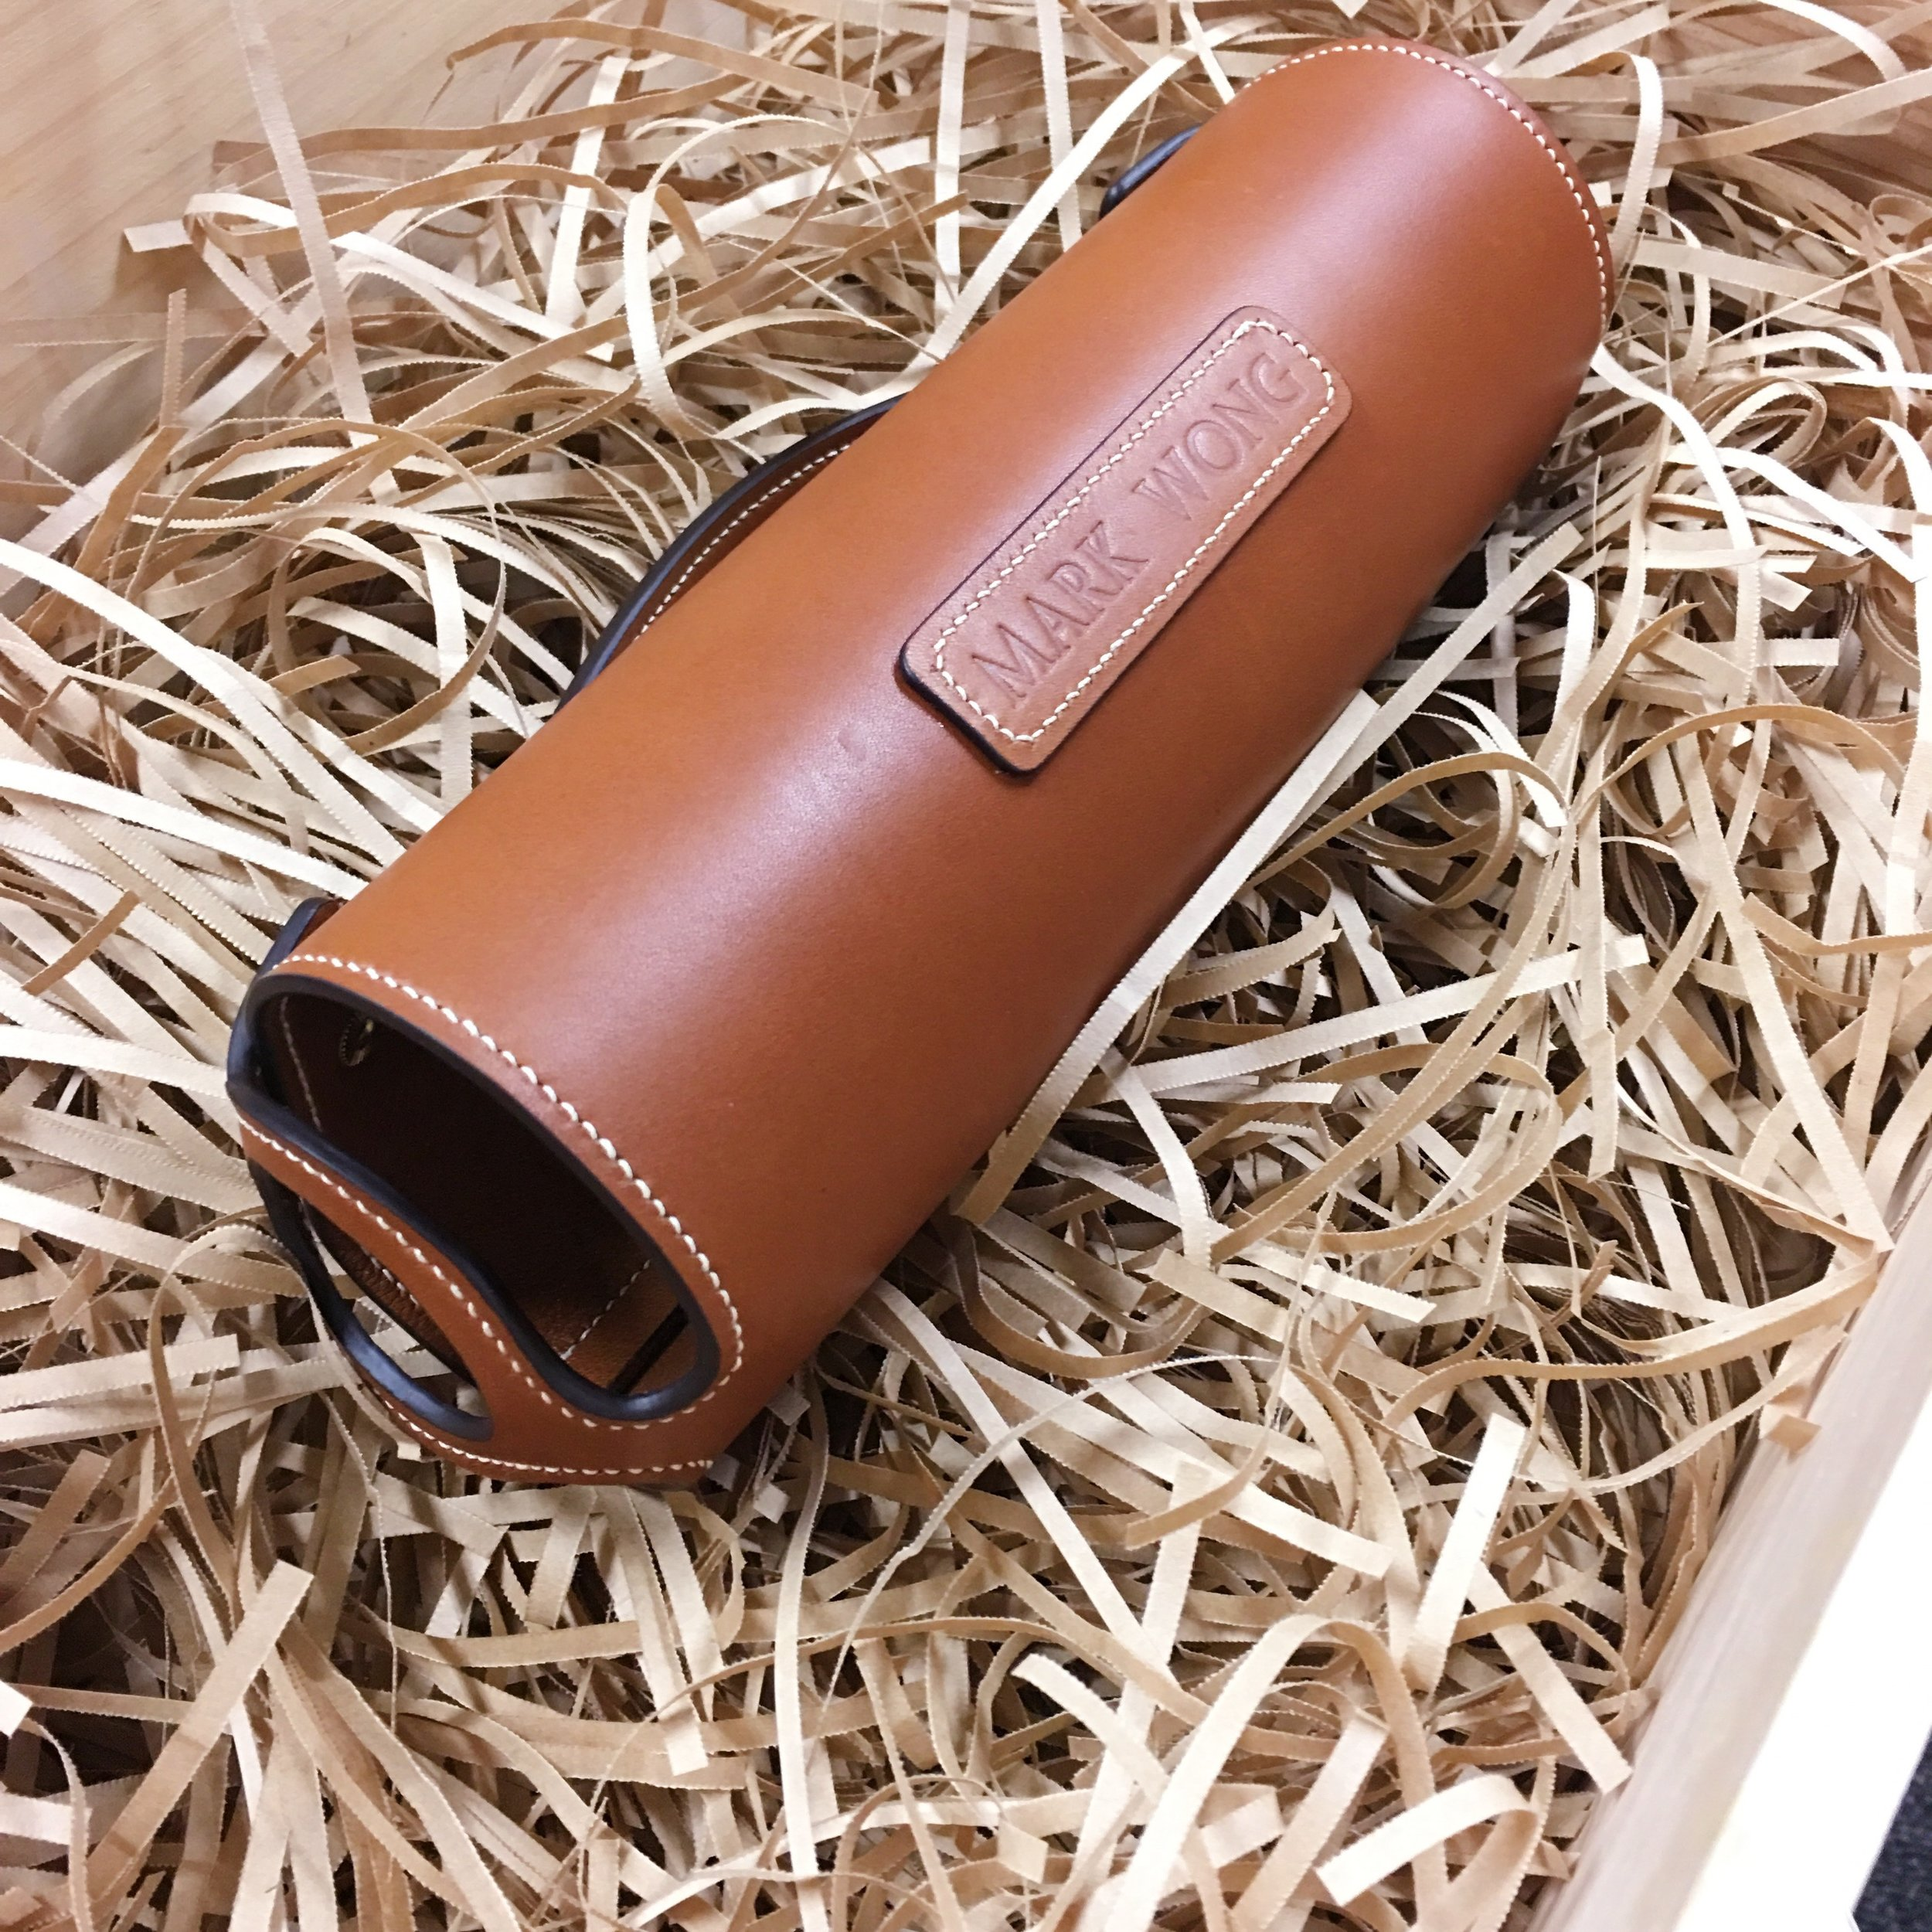 Product made from Barenia leather